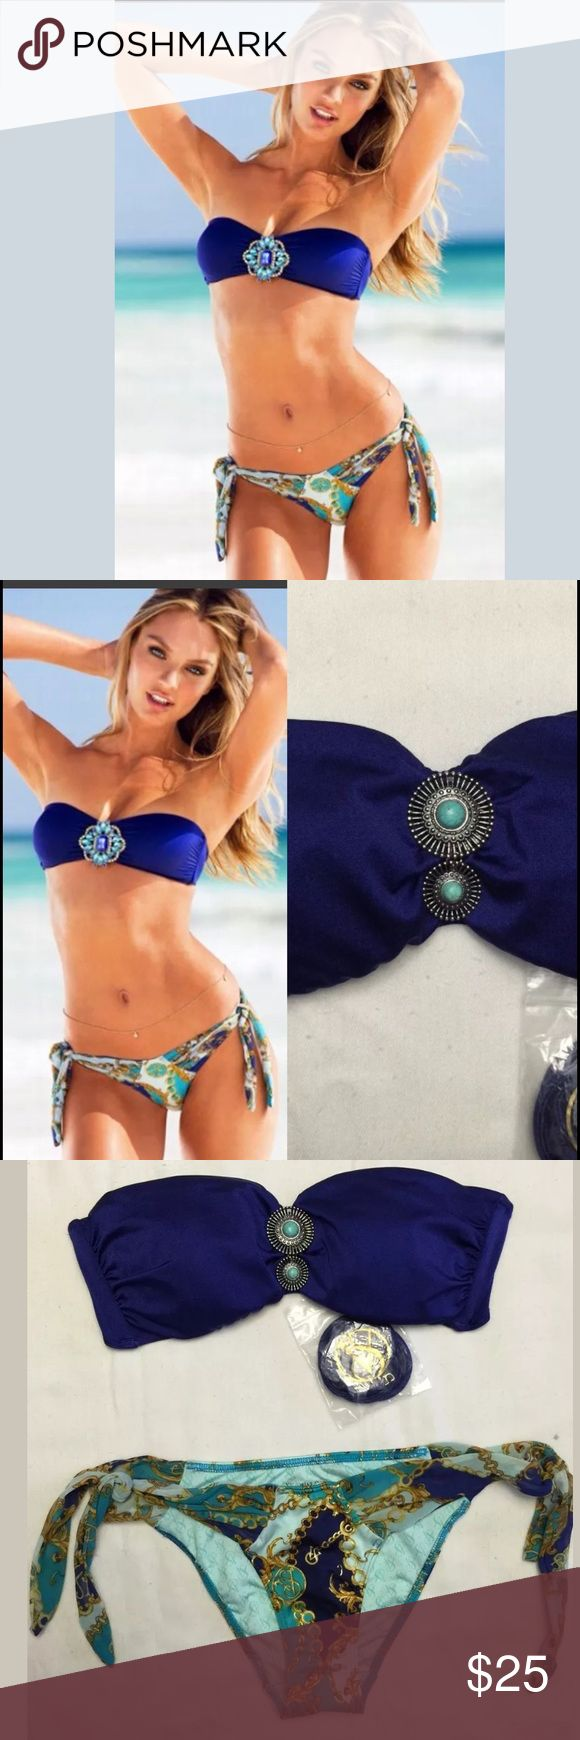 """new  VICTORIA's SECRET 2pc bikini set bathing suit NEW w/ out Price Tag. Display item Top & Bottom sz:  S/P Small Petite ‼️Different jewel piece brooch on bandeau (photo) ‼️ BANDEAU TOP                   Halter strings included                                                          Color: solid blue/purple (like magenta) Light padding (removable) Chest:  ~ 26"""" unstretched BIKINI BOTTOM Color:  Baroque & Chains in multi-color HIPSTER side ties (adjustable) partially lined  Brazilian style…"""